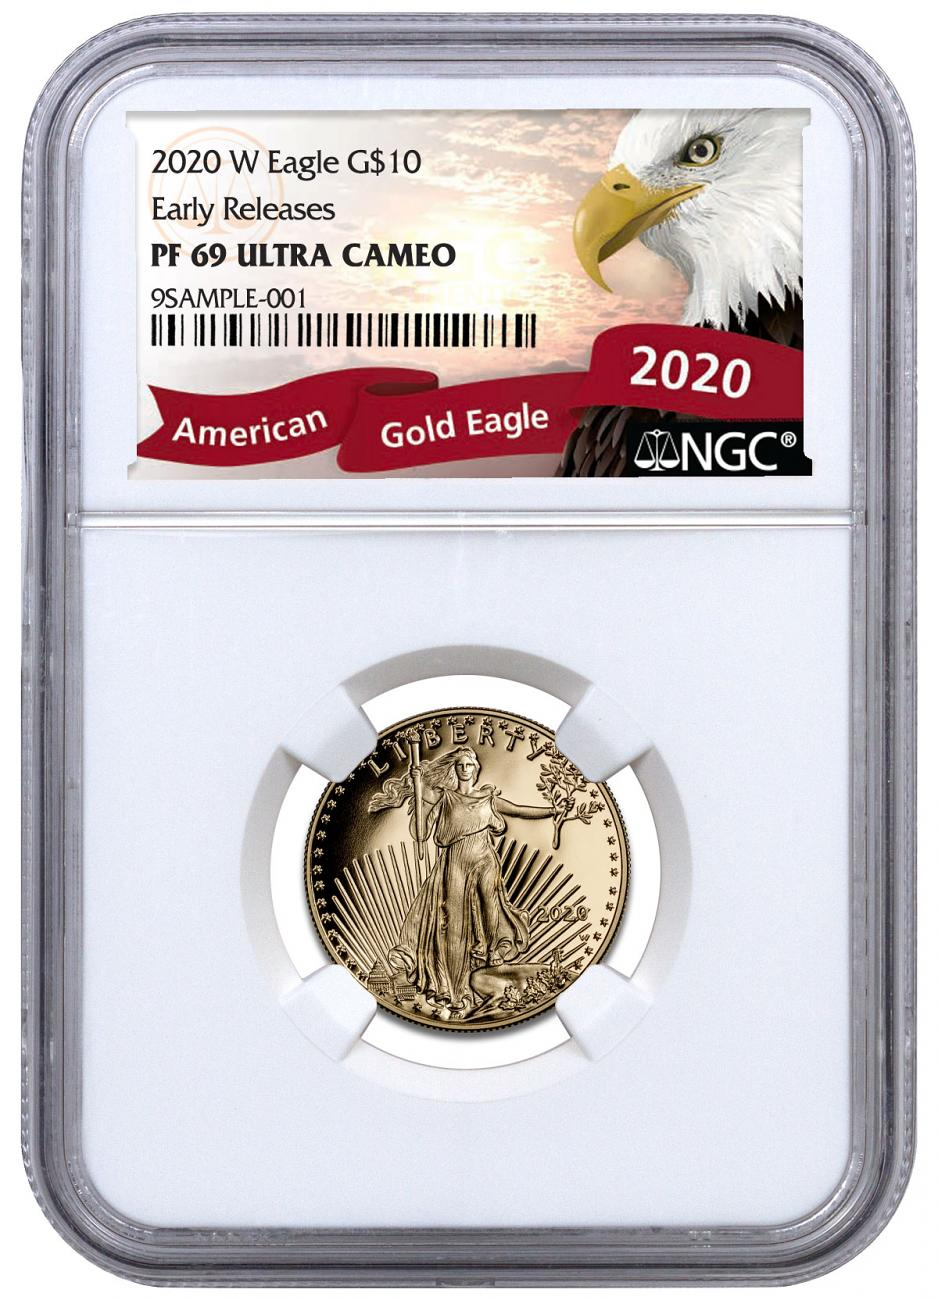 2020-W 1/4 oz Gold American Eagle Proof $10 Coin NGC PF69 UC ER Exclusive Eagle Label